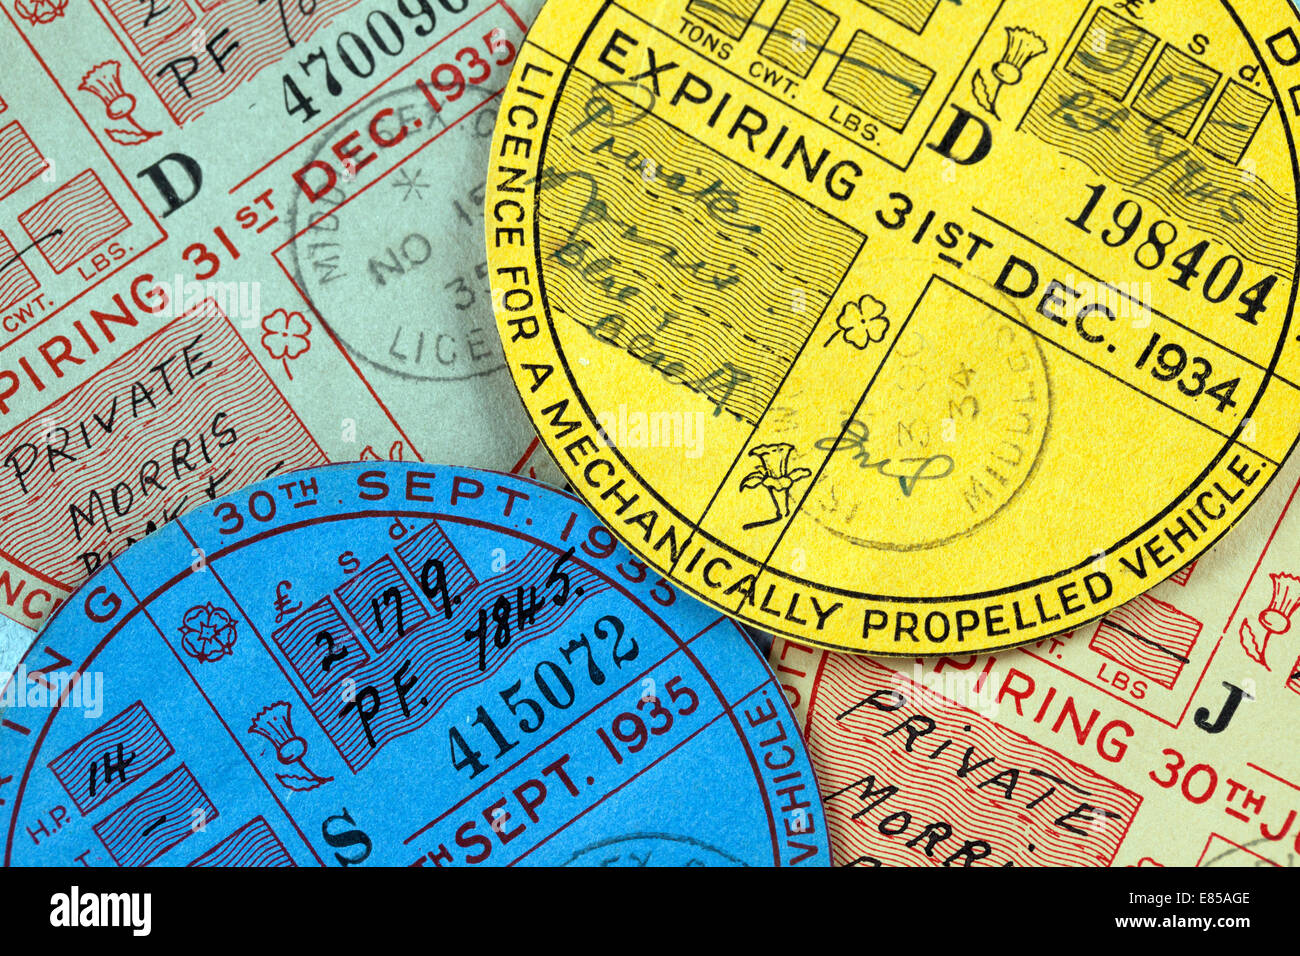 1934 and 1935 car tax discs for a mechanically propelled vehicle - Stock Image